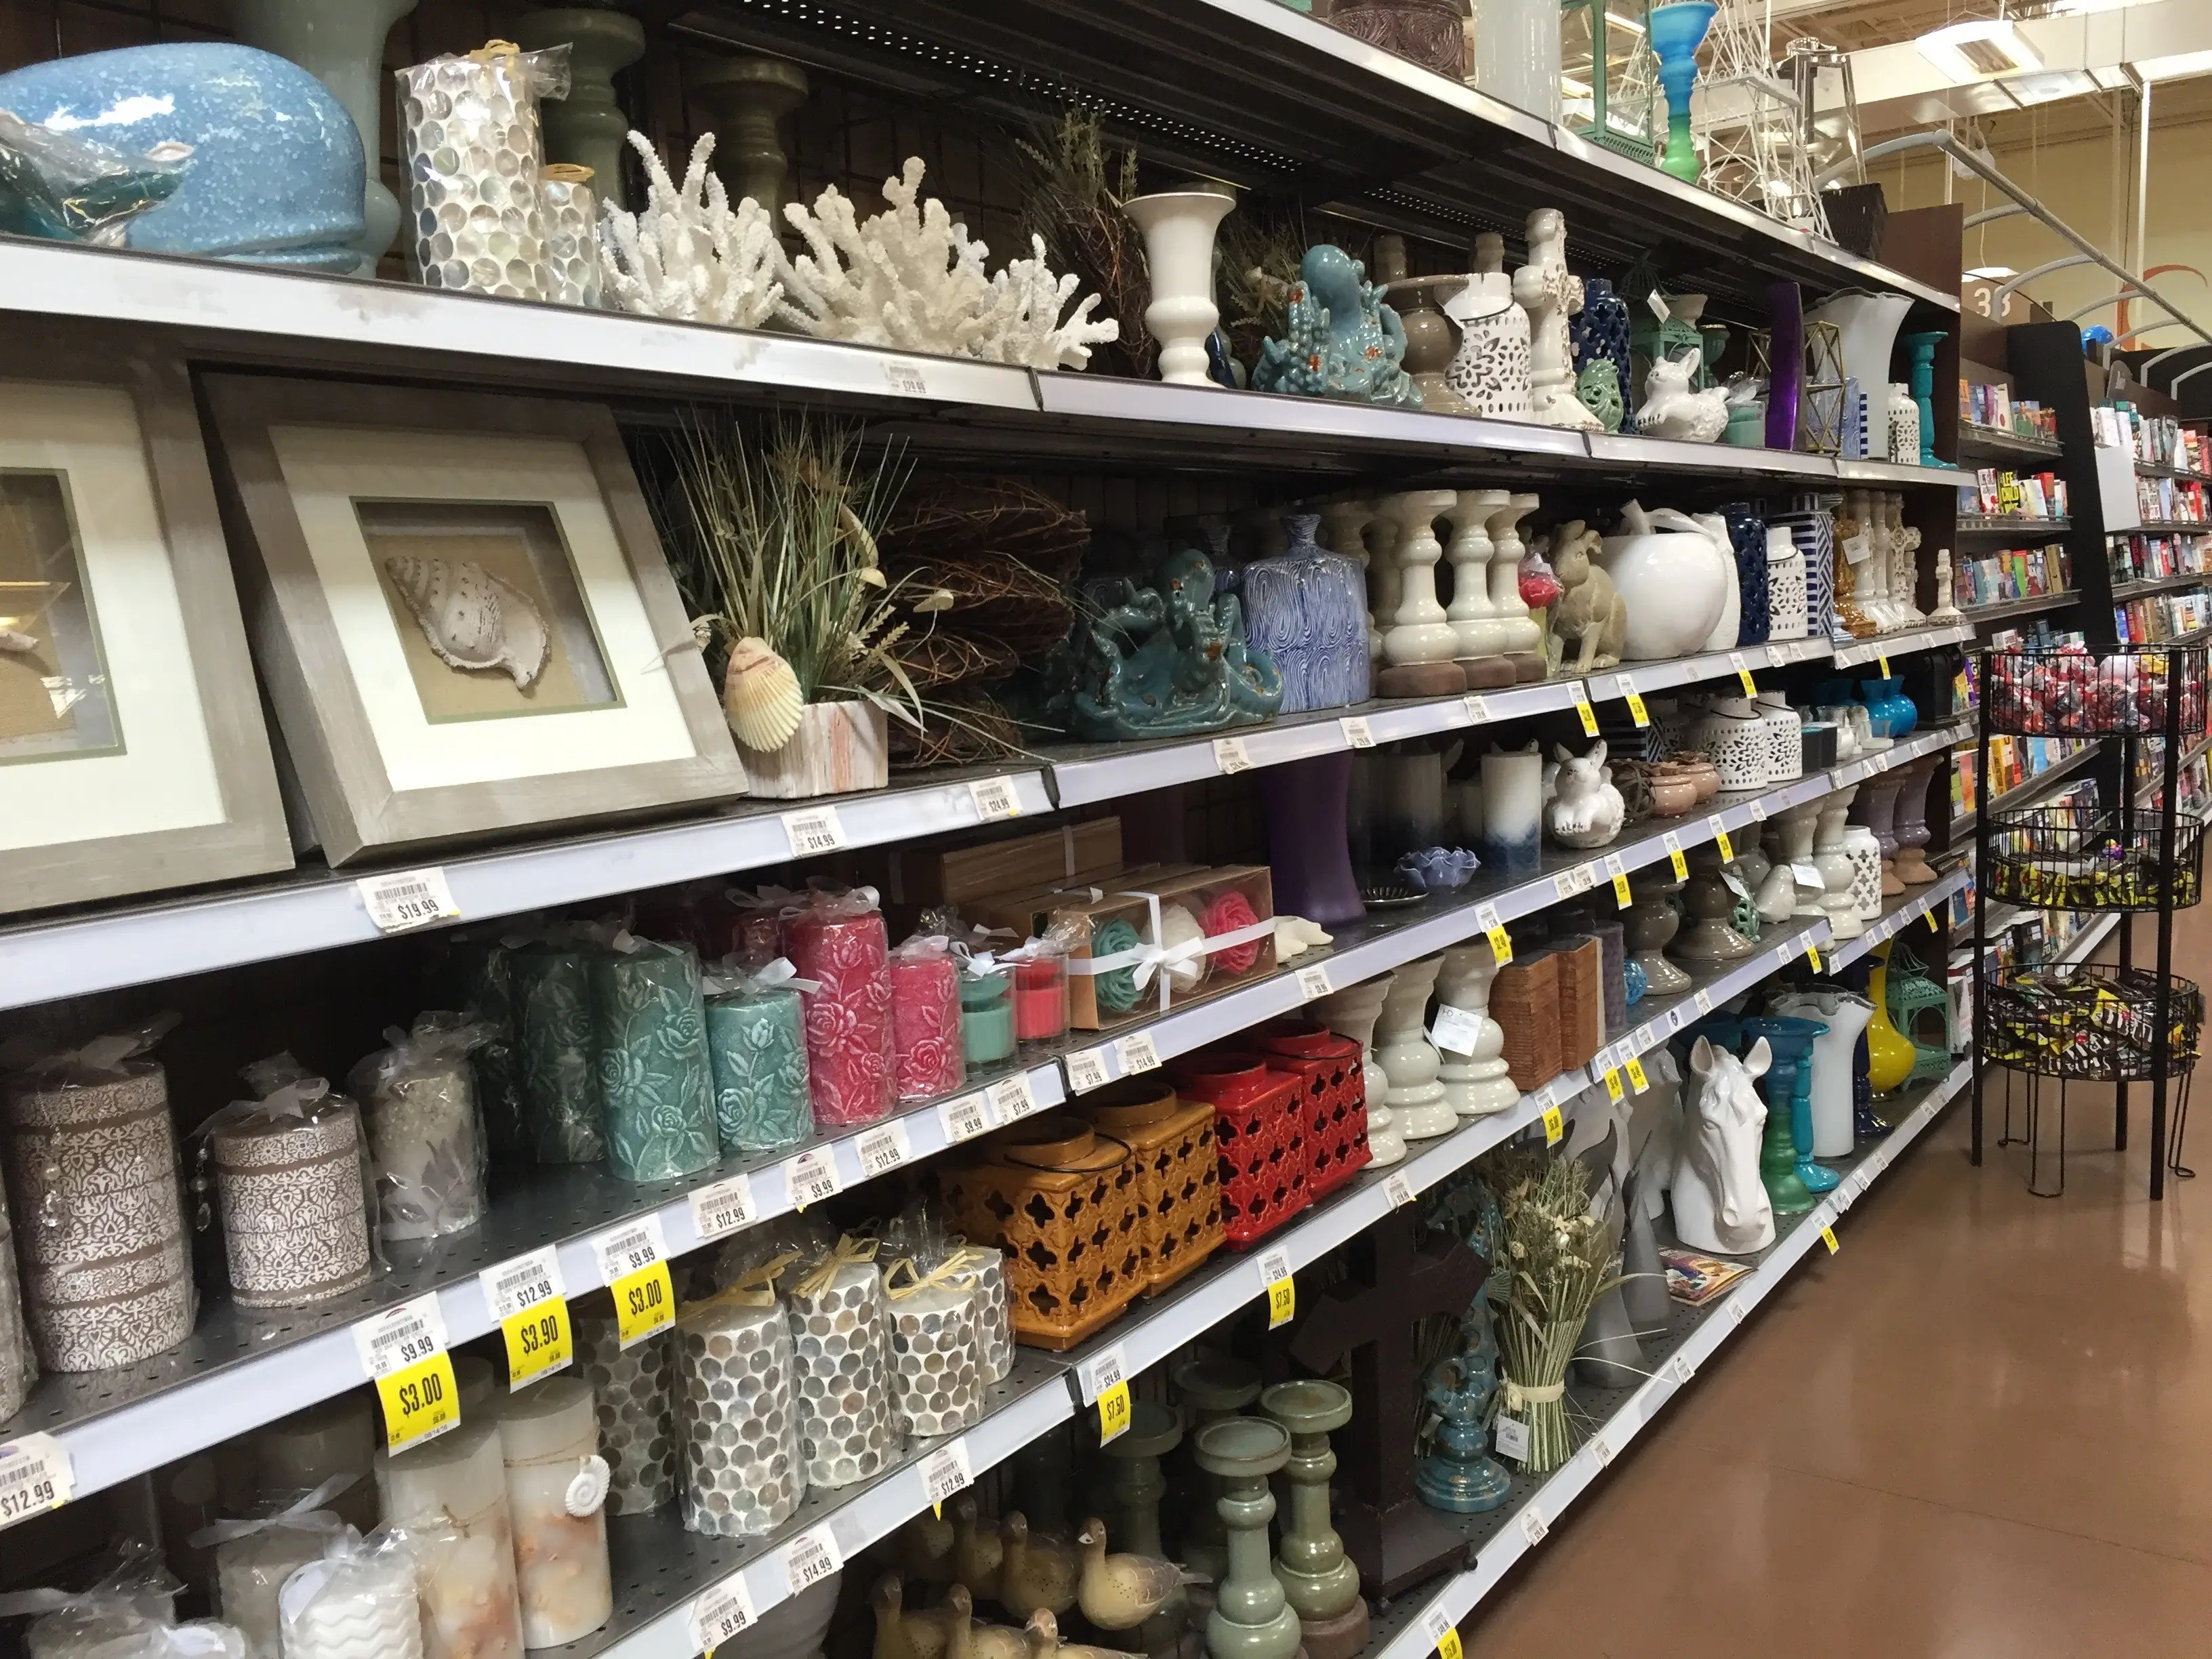 The store even offers a selection of home goods.